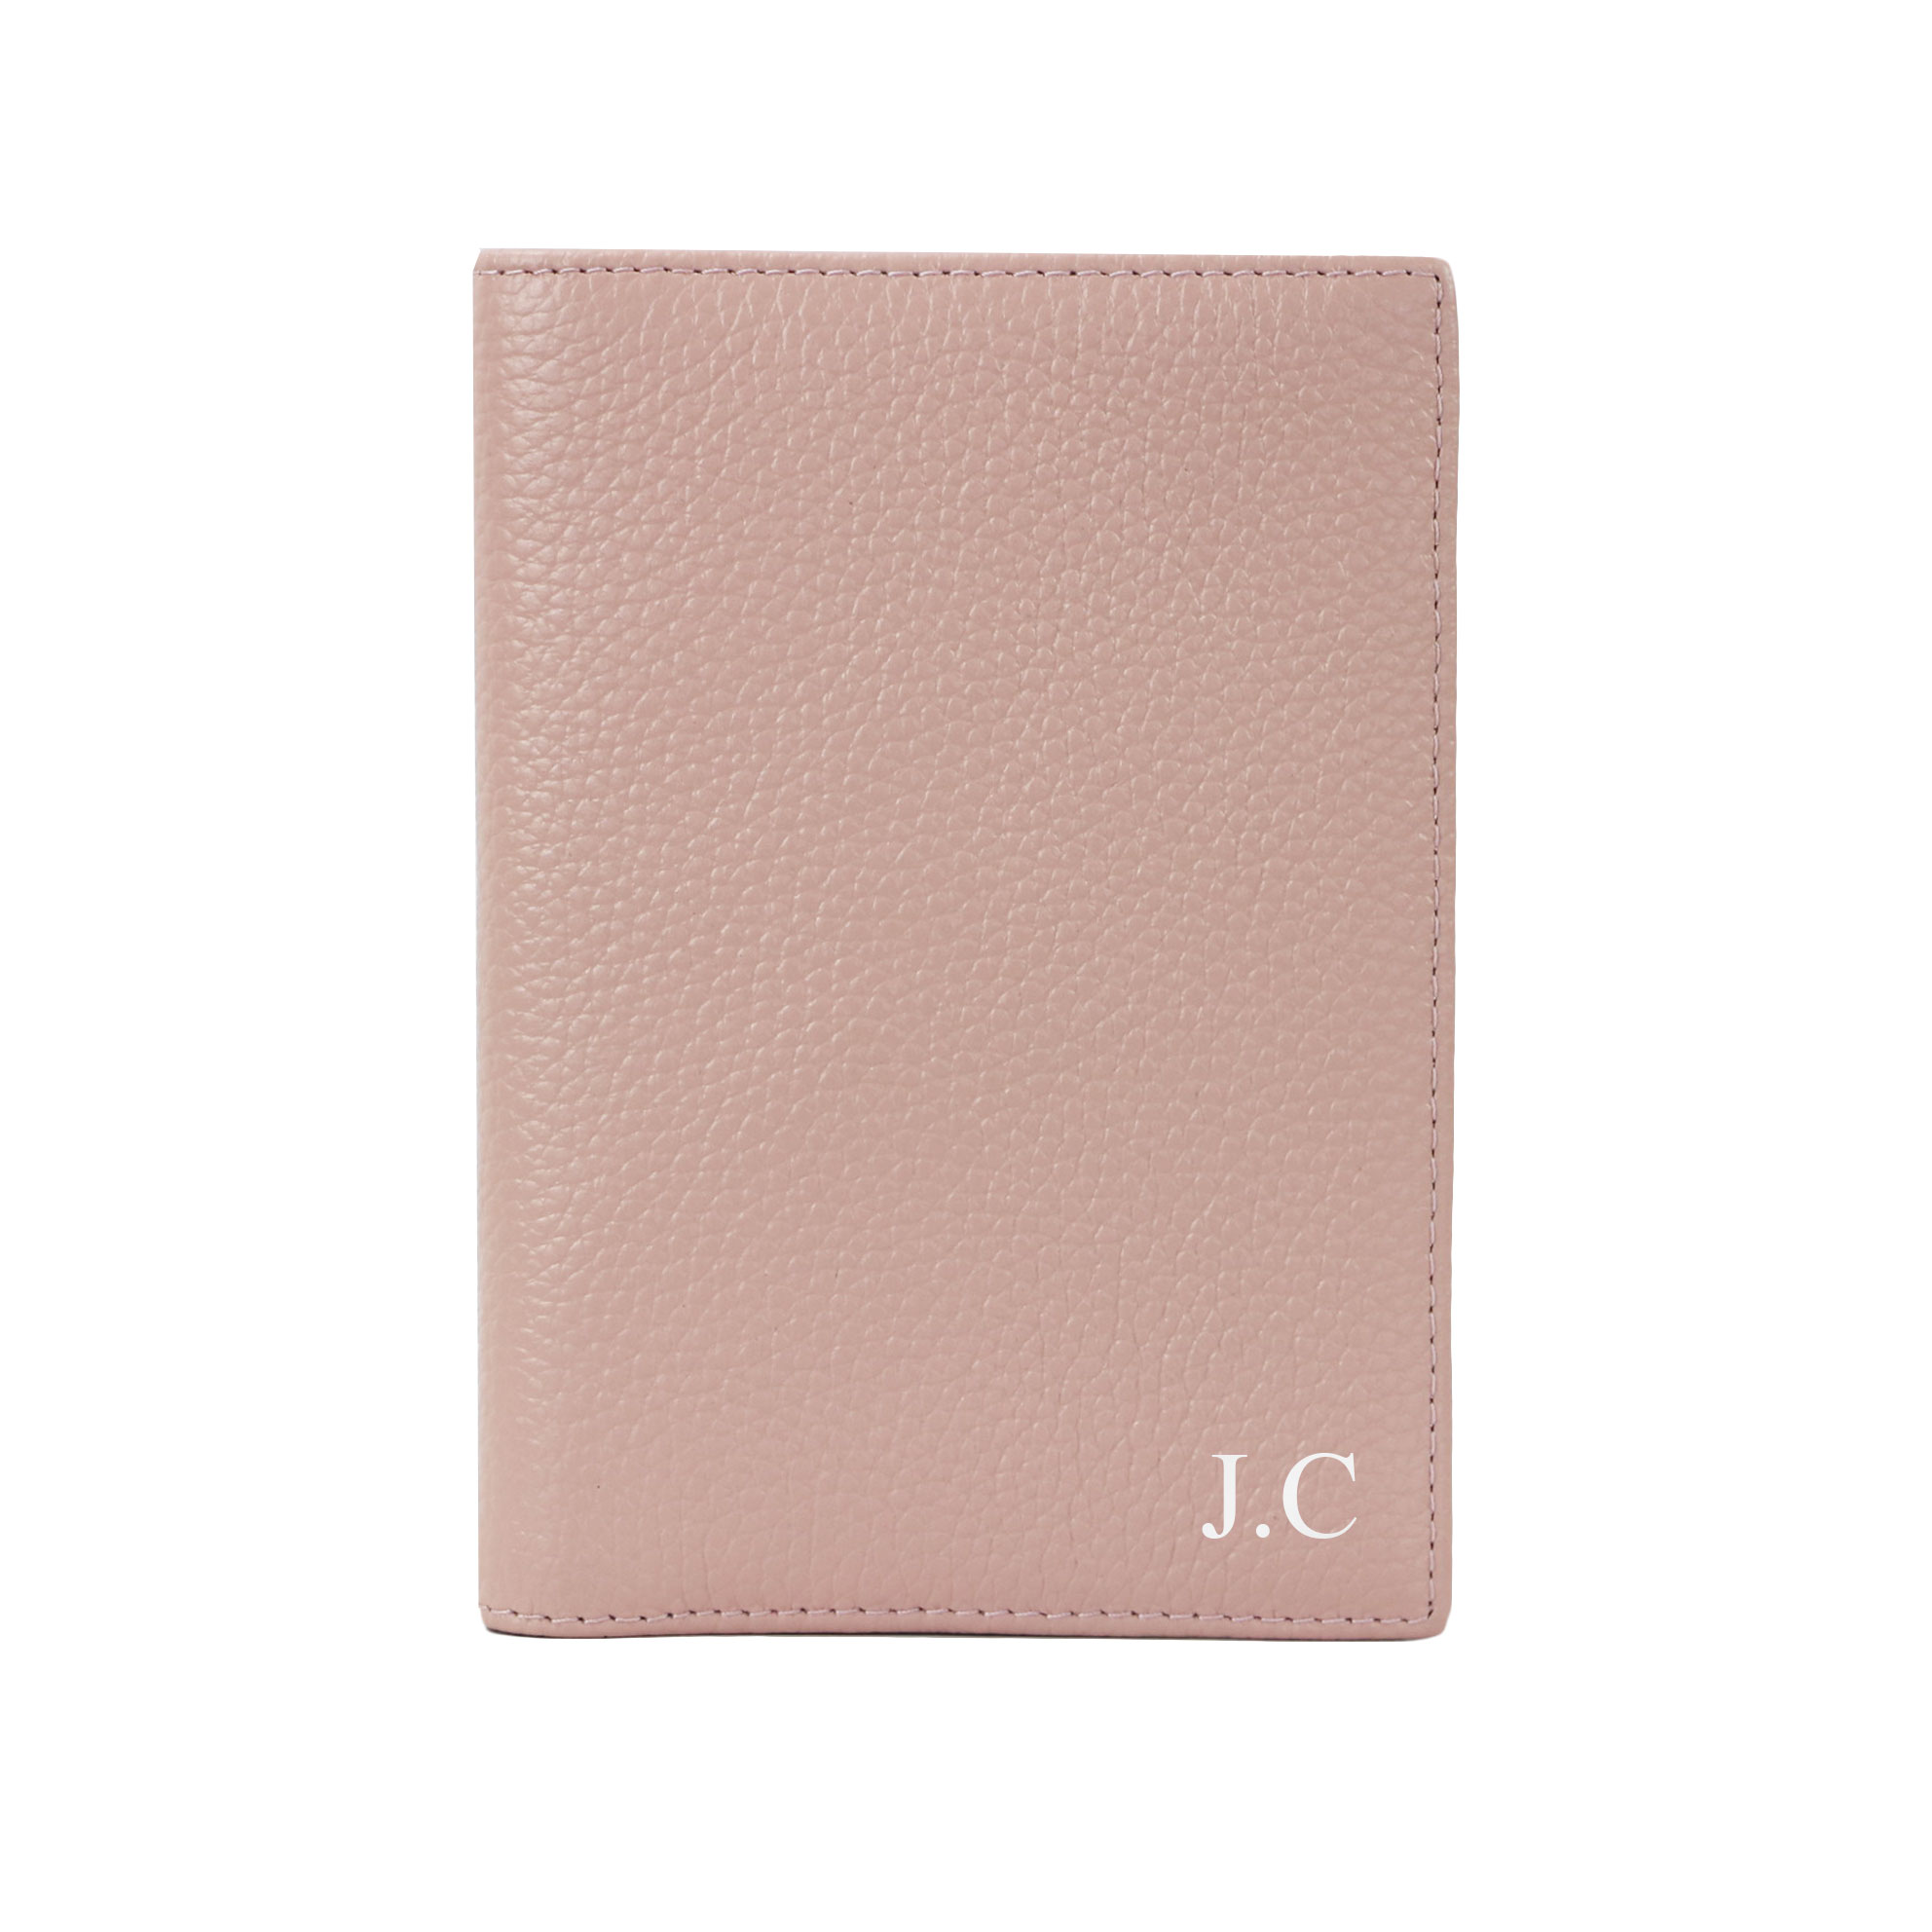 Fashion Case Passport Holder Real Leather Pebbled Passport Cover Portable Boarding Cover Travel Accessories Passport Travel Bag